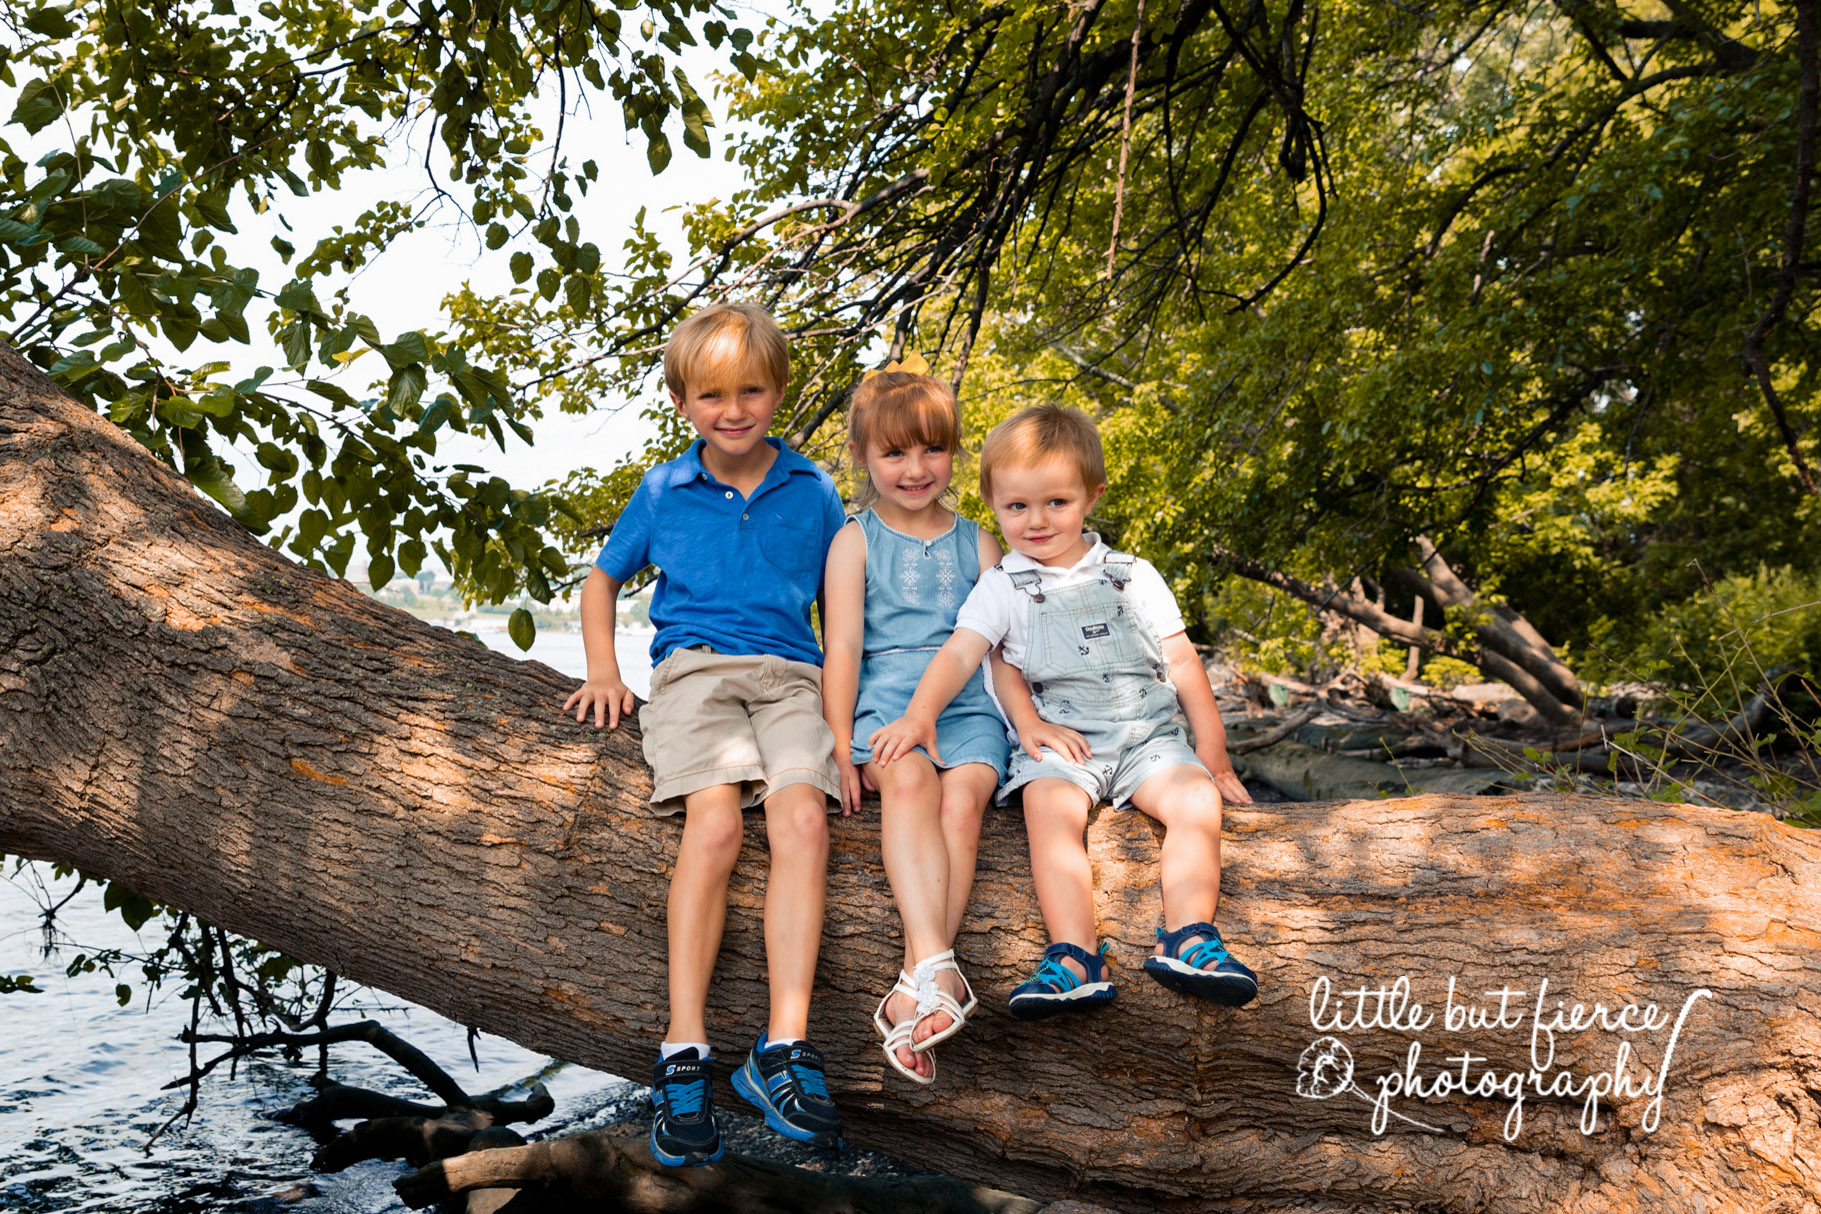 Little_But_Fierce_Photography_Hudson_Valley_Catskills_Family_41.jpg